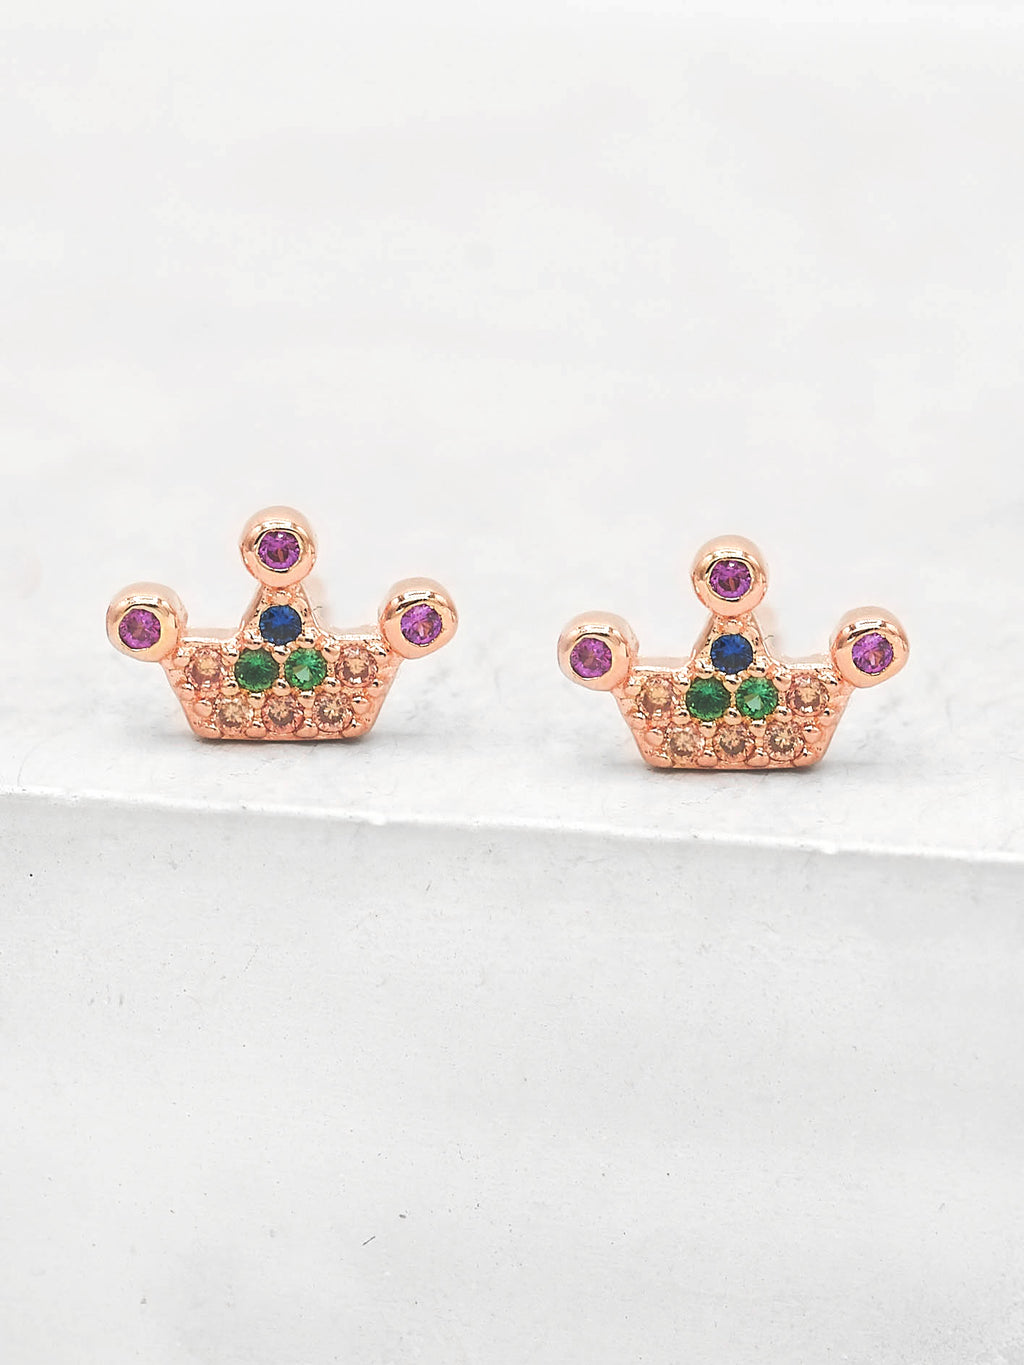 Rose Gold plated crown design with Round Rainbow CZ stones Crown design Stud Earrings by The Faint Hearted Jewelry